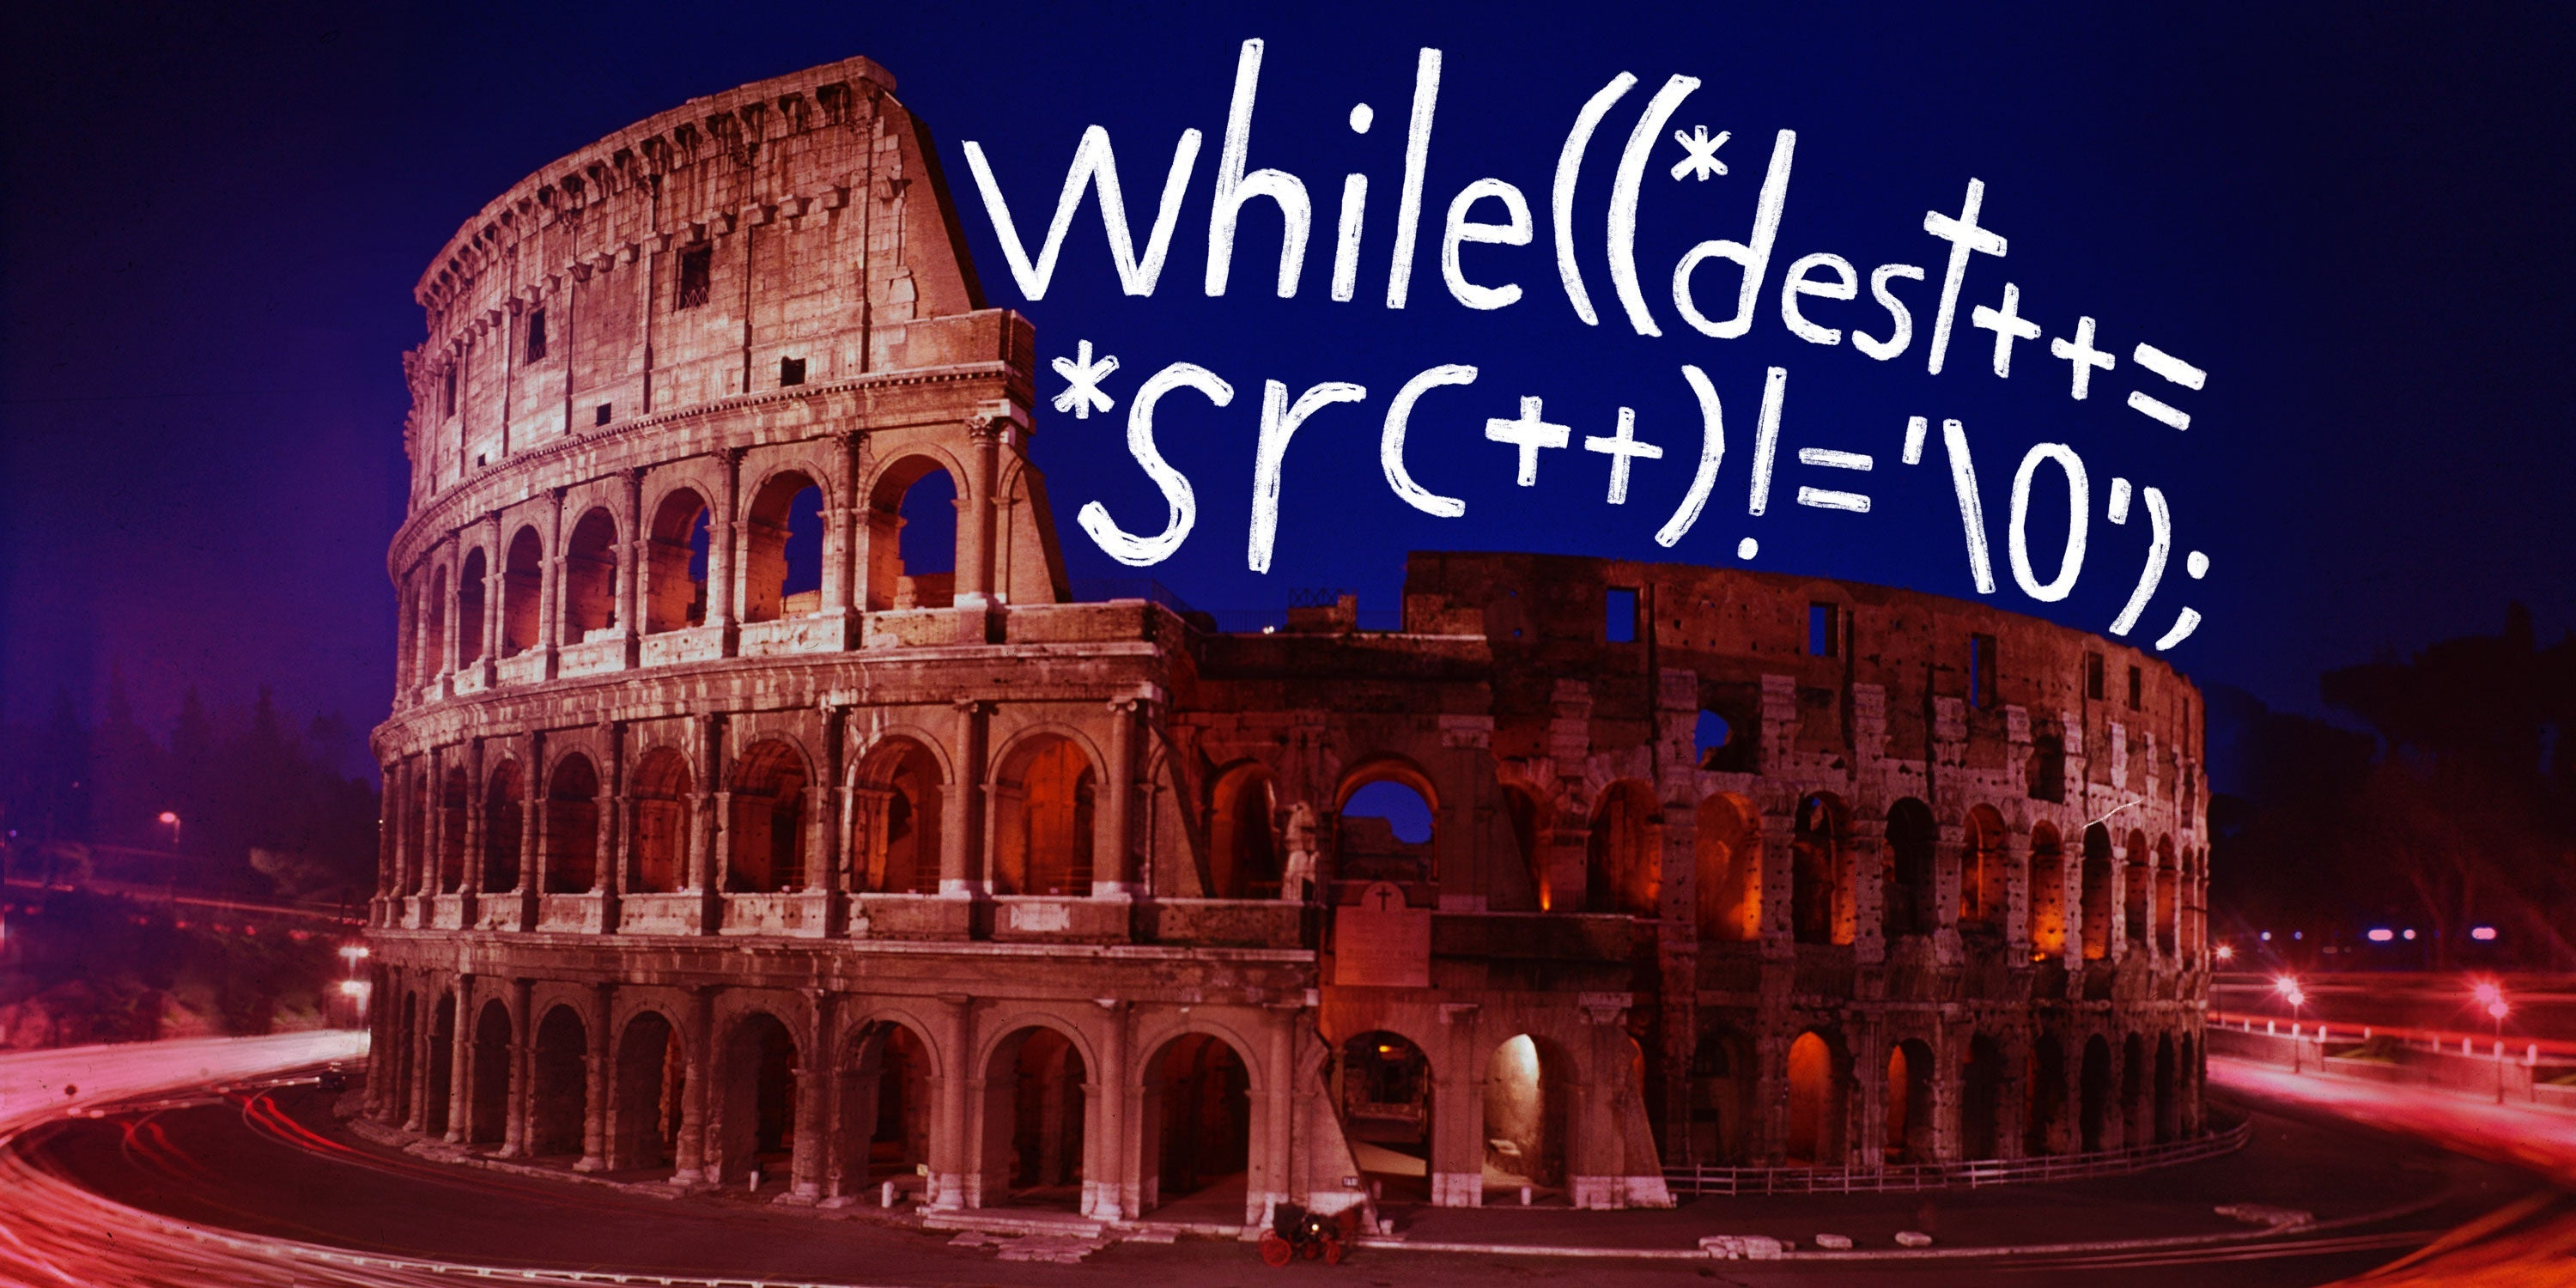 The colliseum overlaid with code.